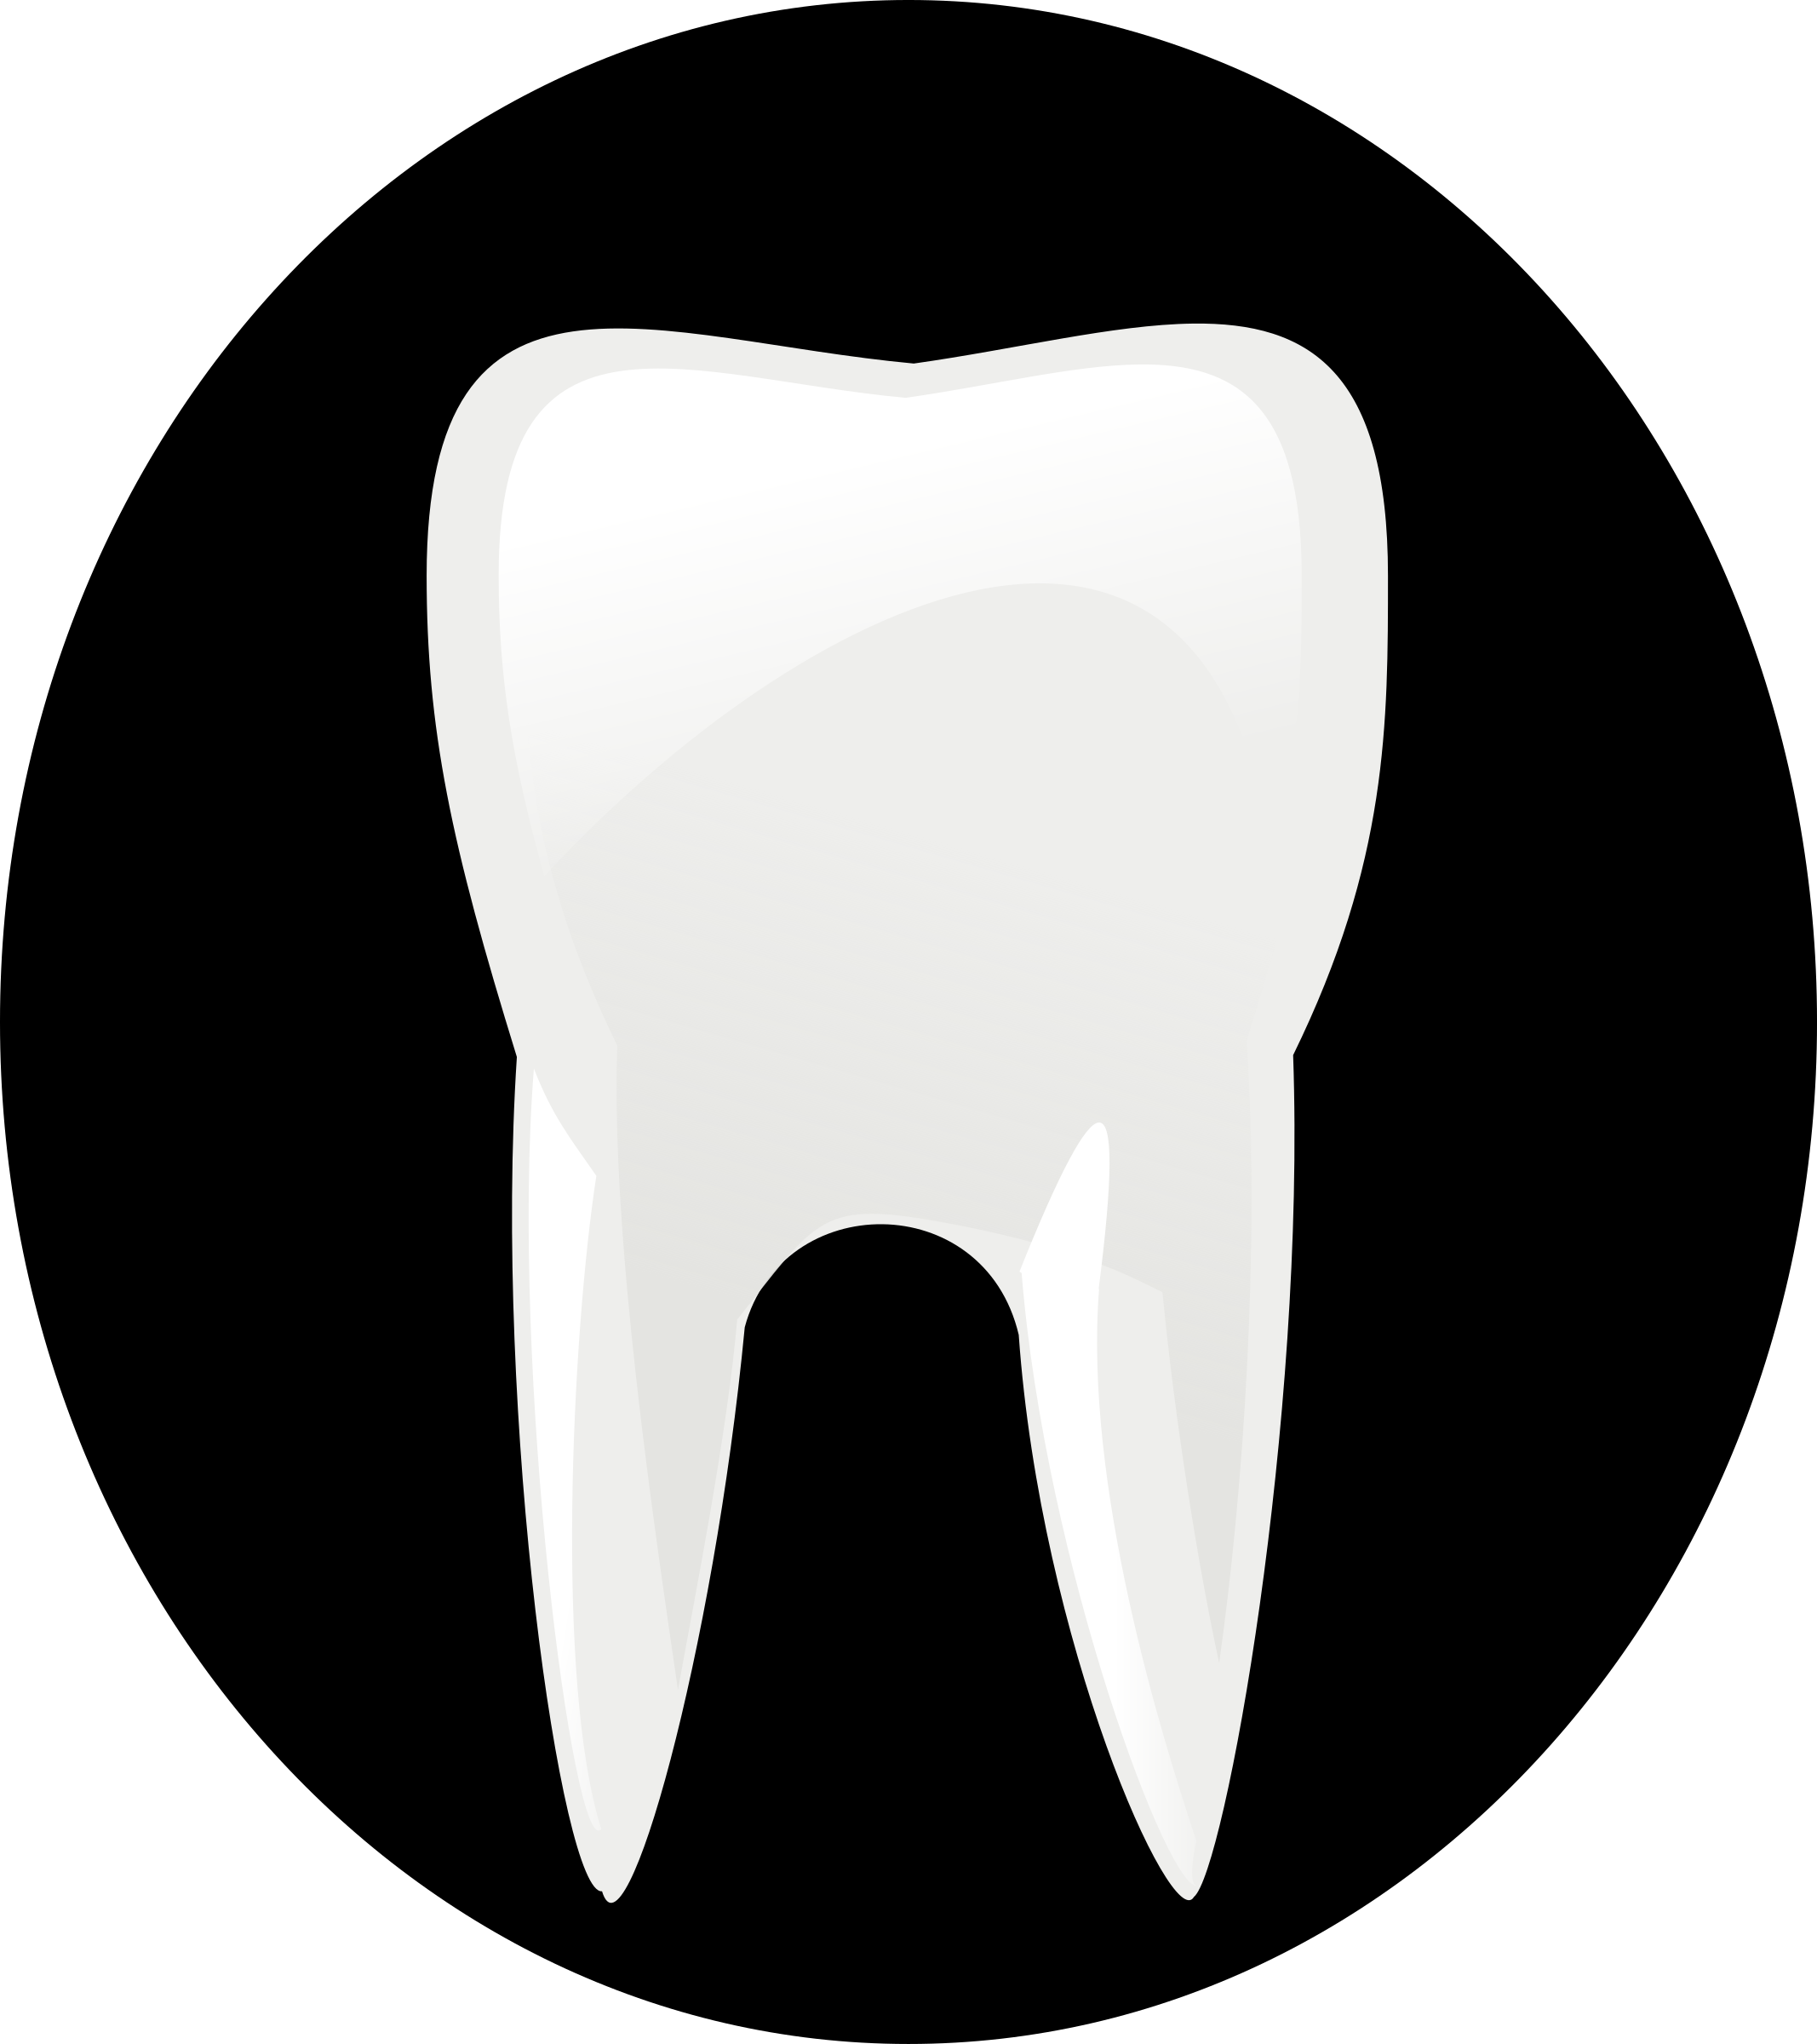 Teeth are incapable of self-repair. So decayed teeth must be treated ... banner freeuse download